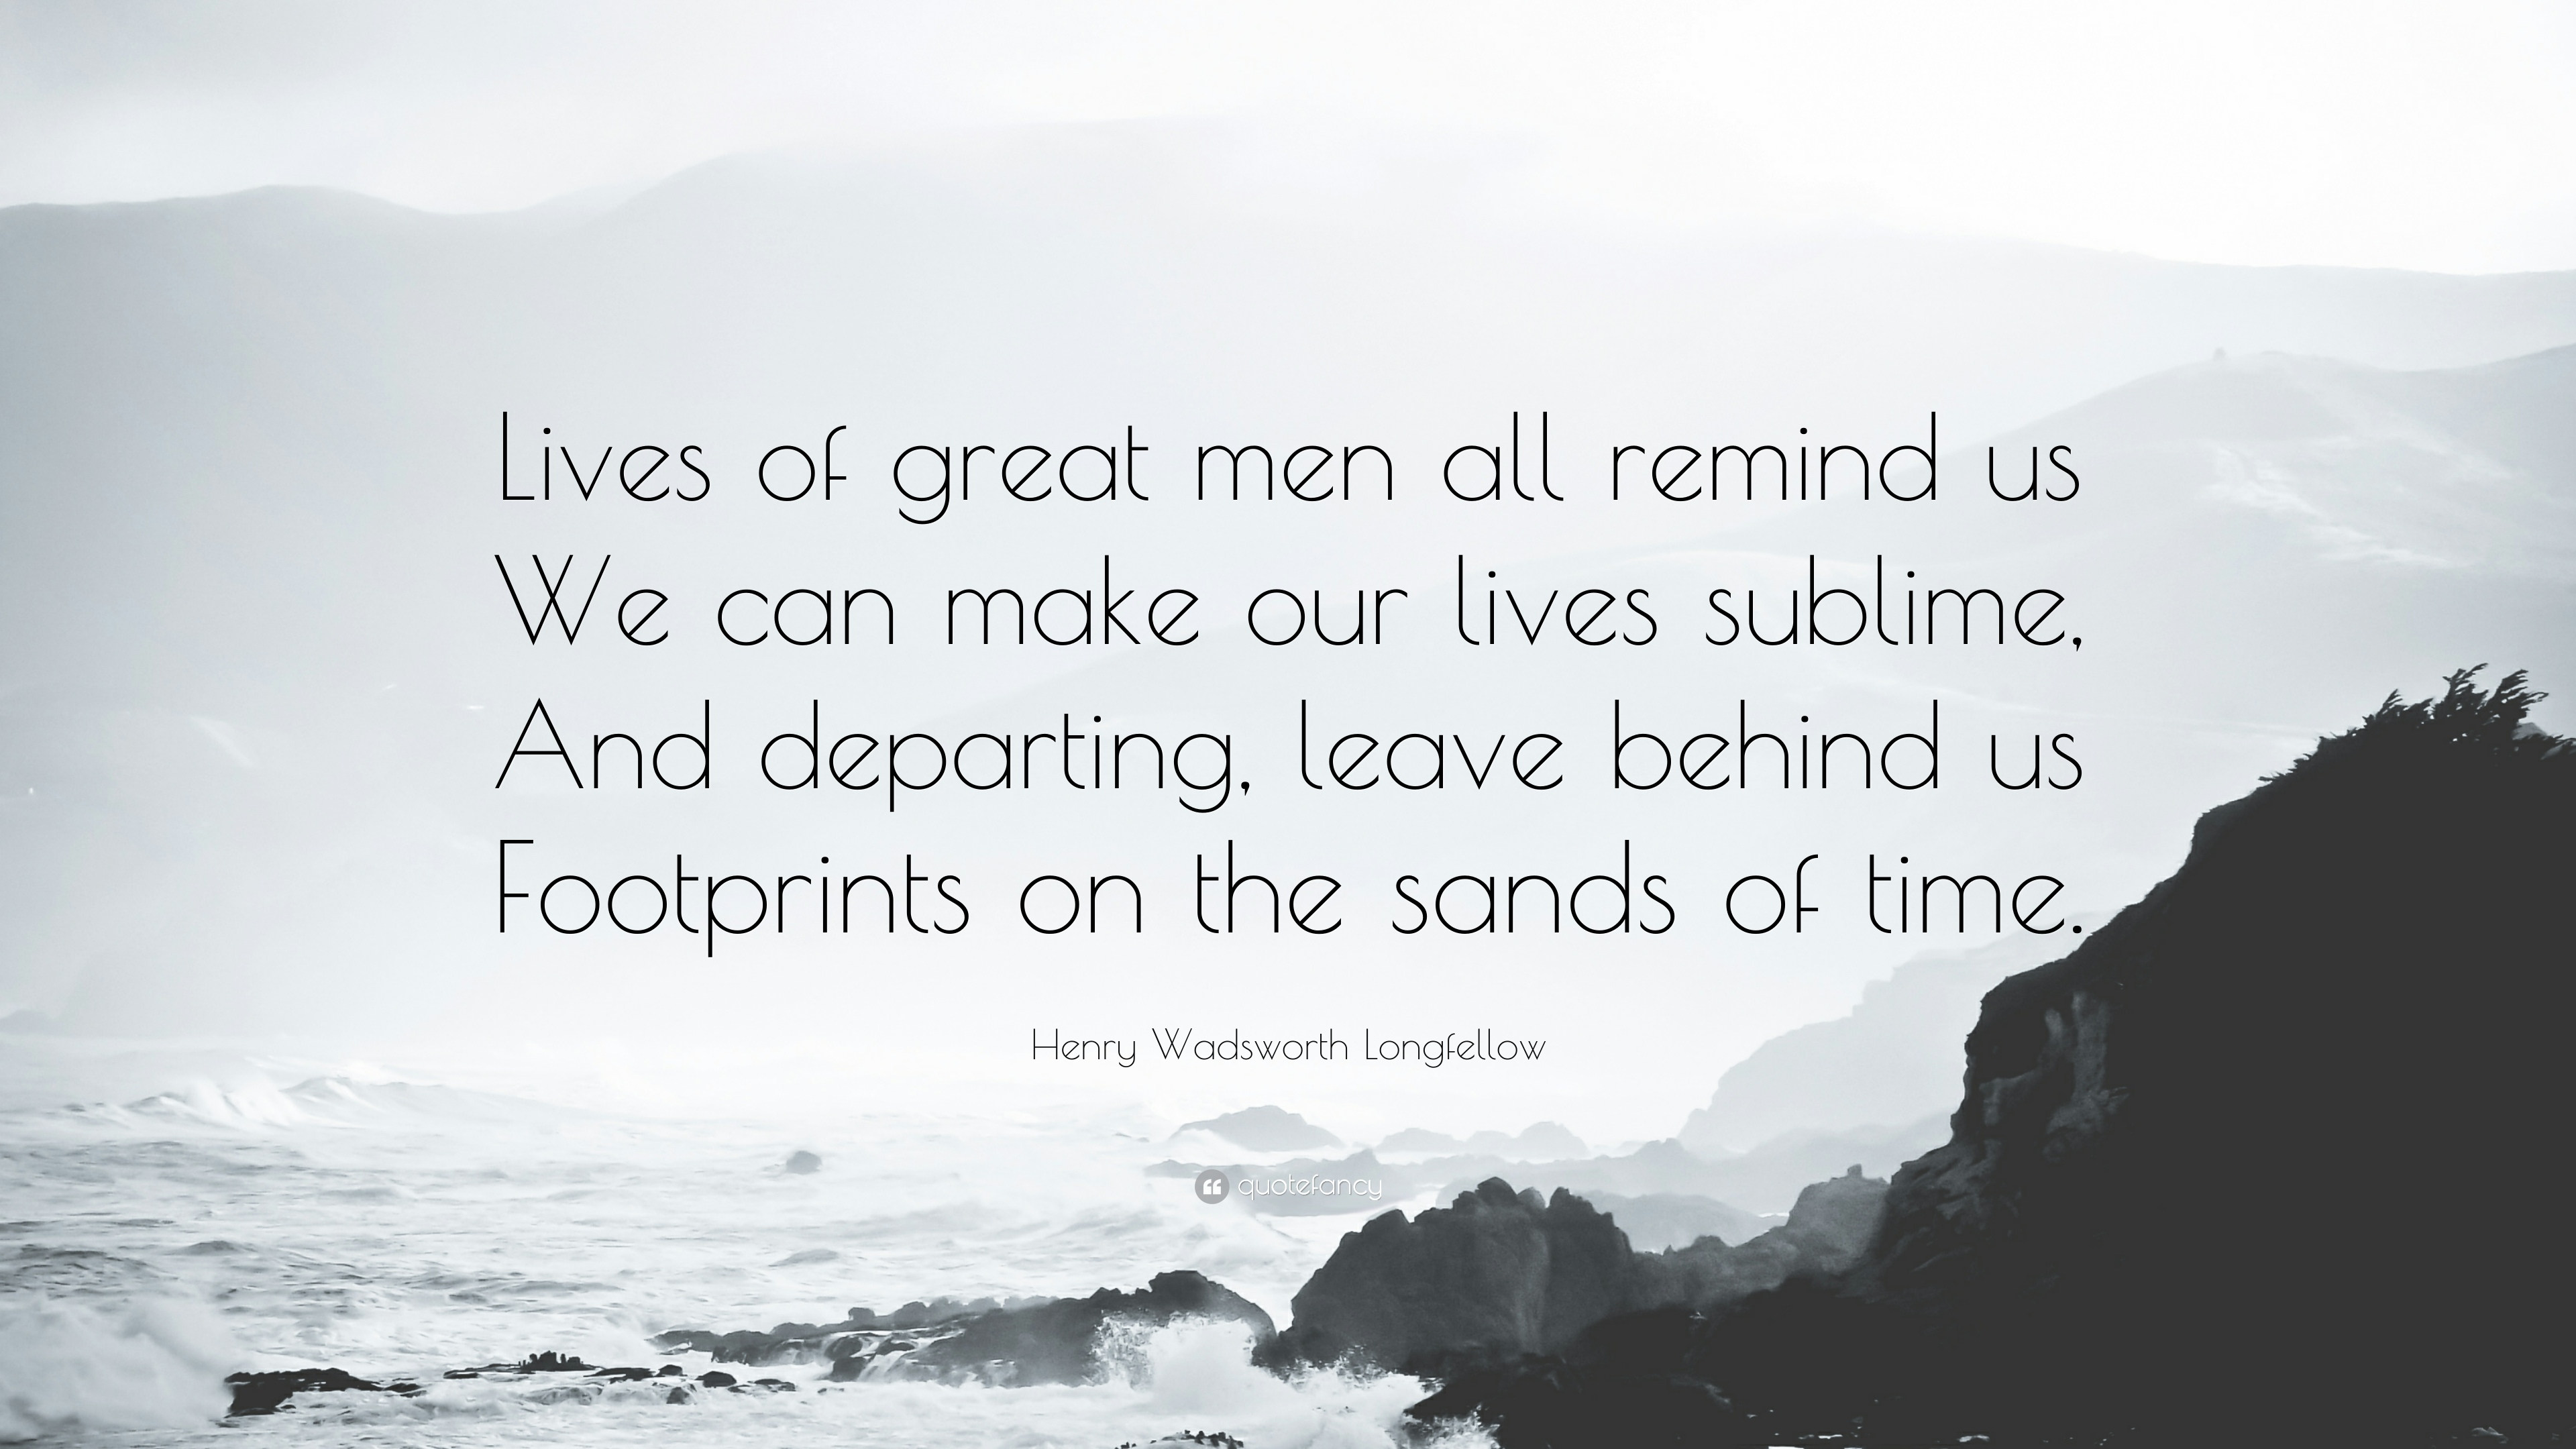 henry wadsworth longfellow quote lives of great men all remind us